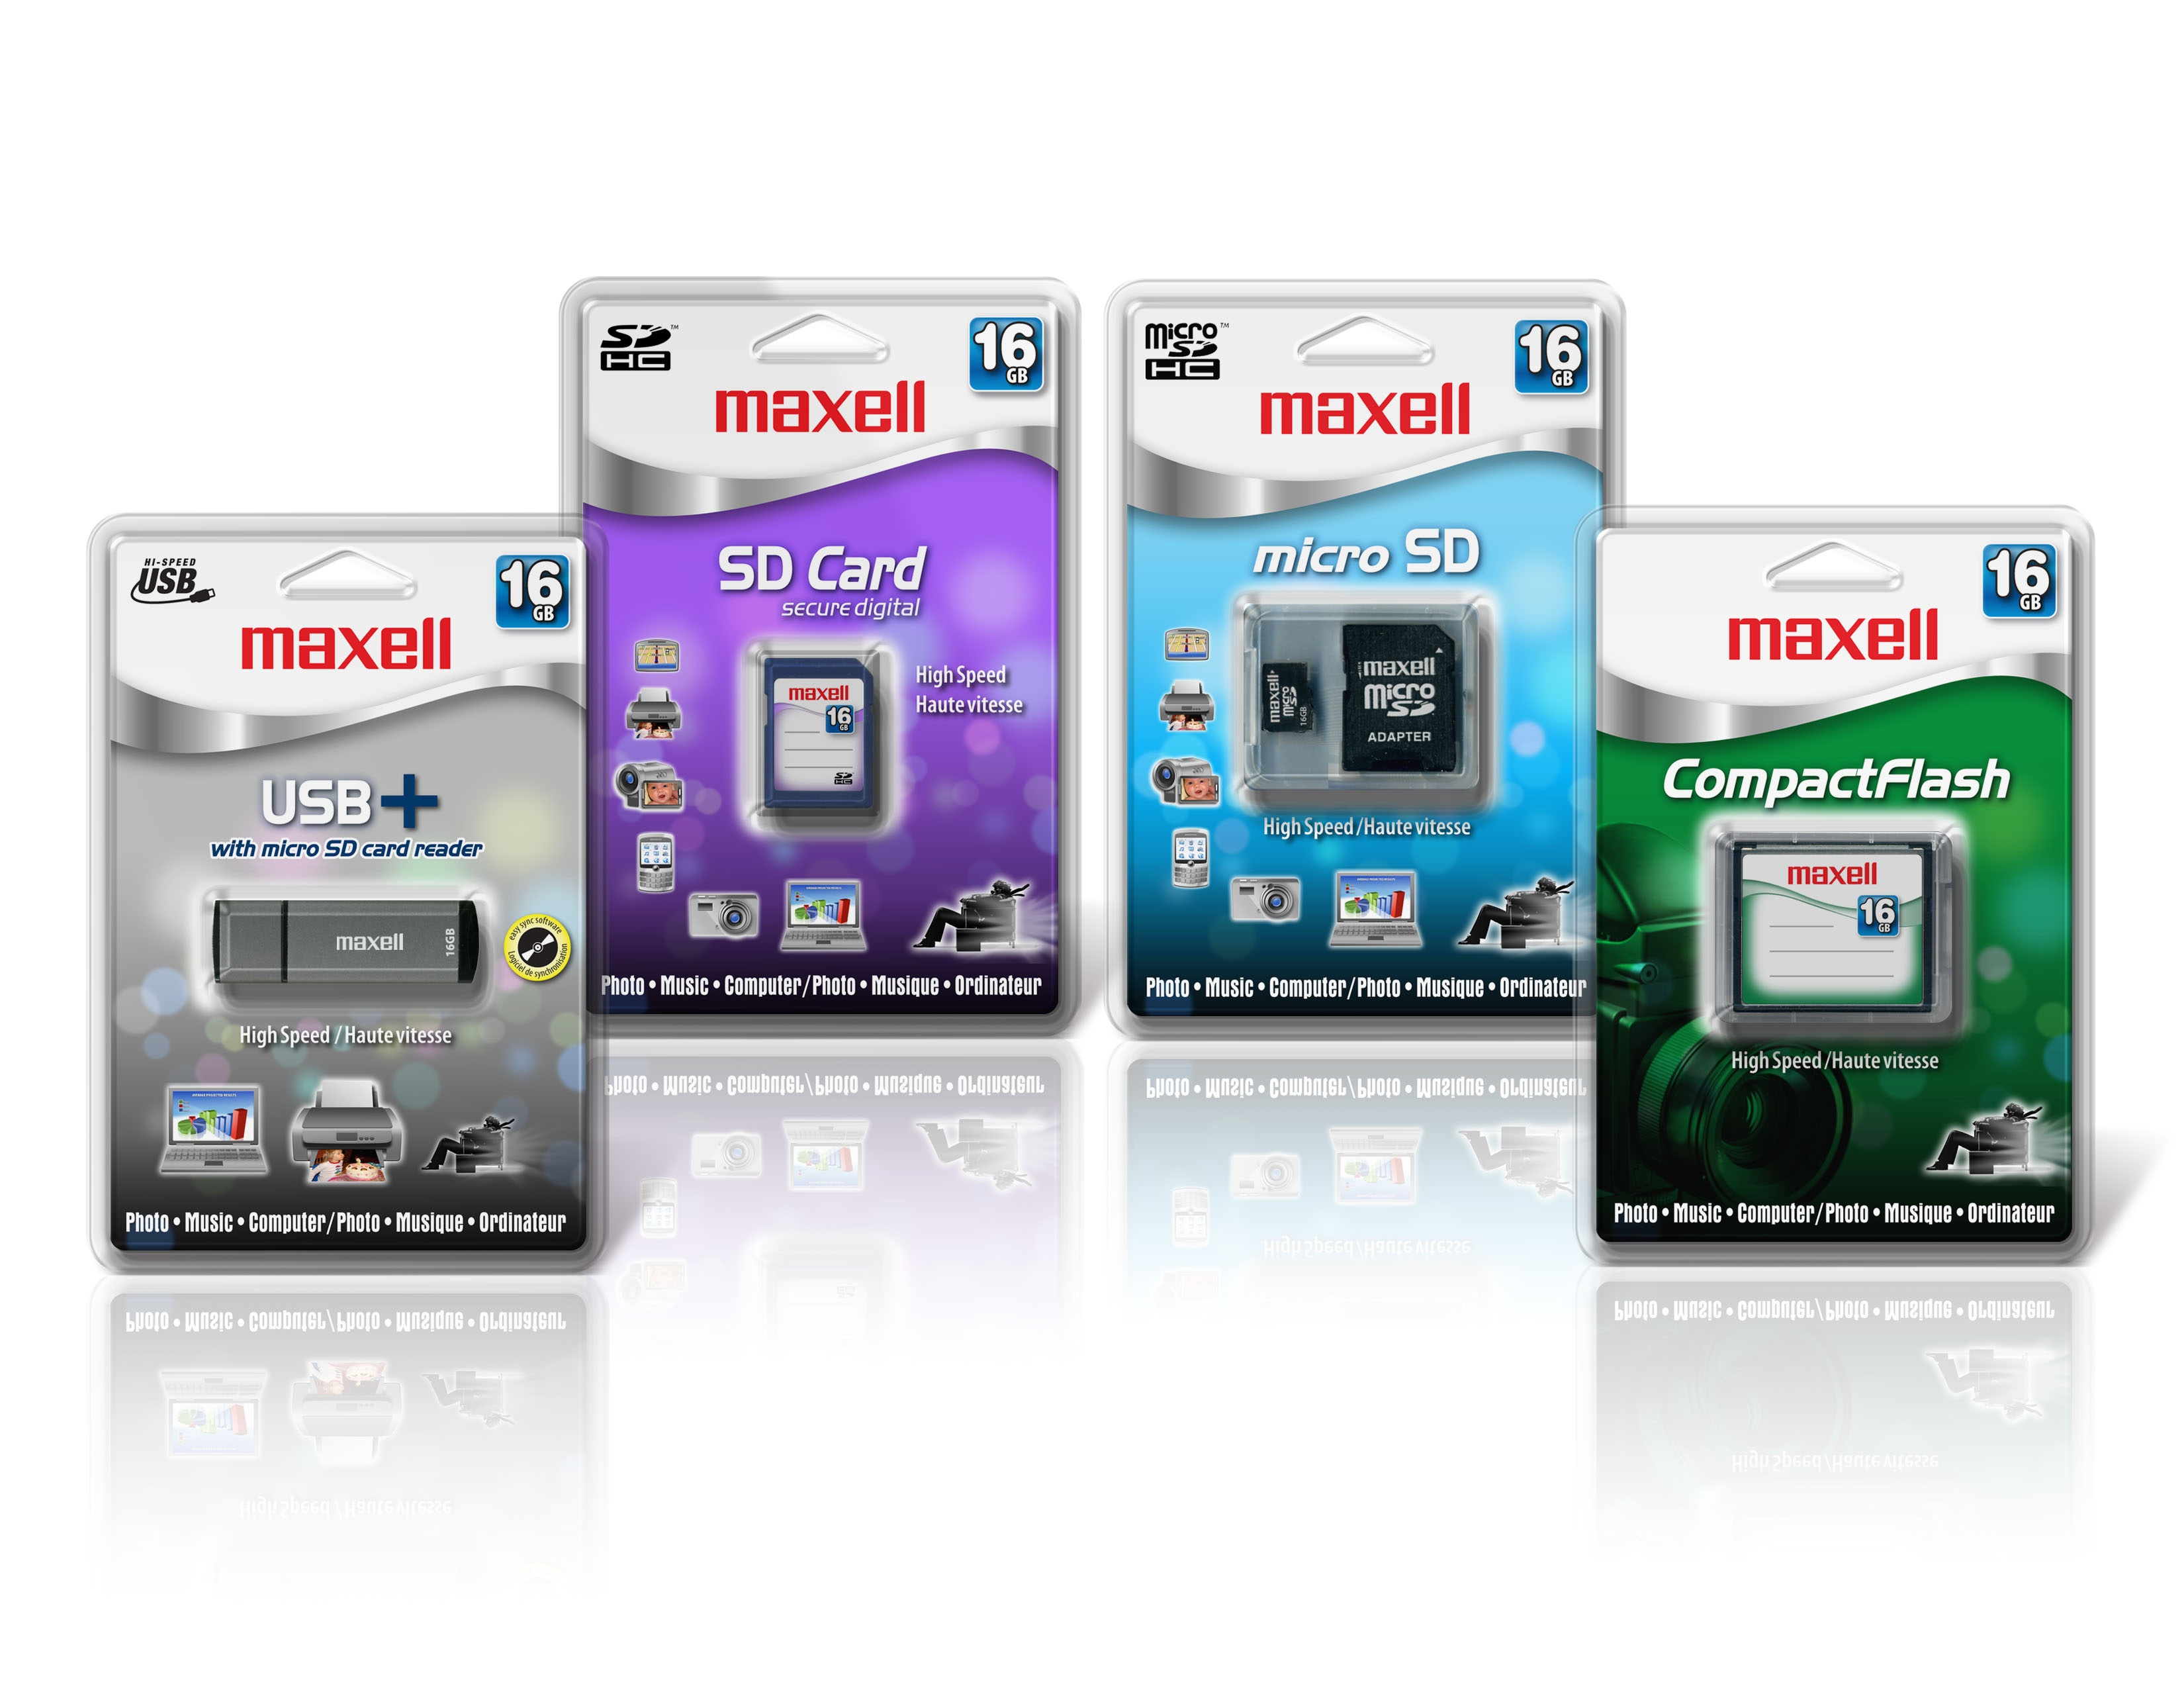 Maxell get busy with broad new flash range